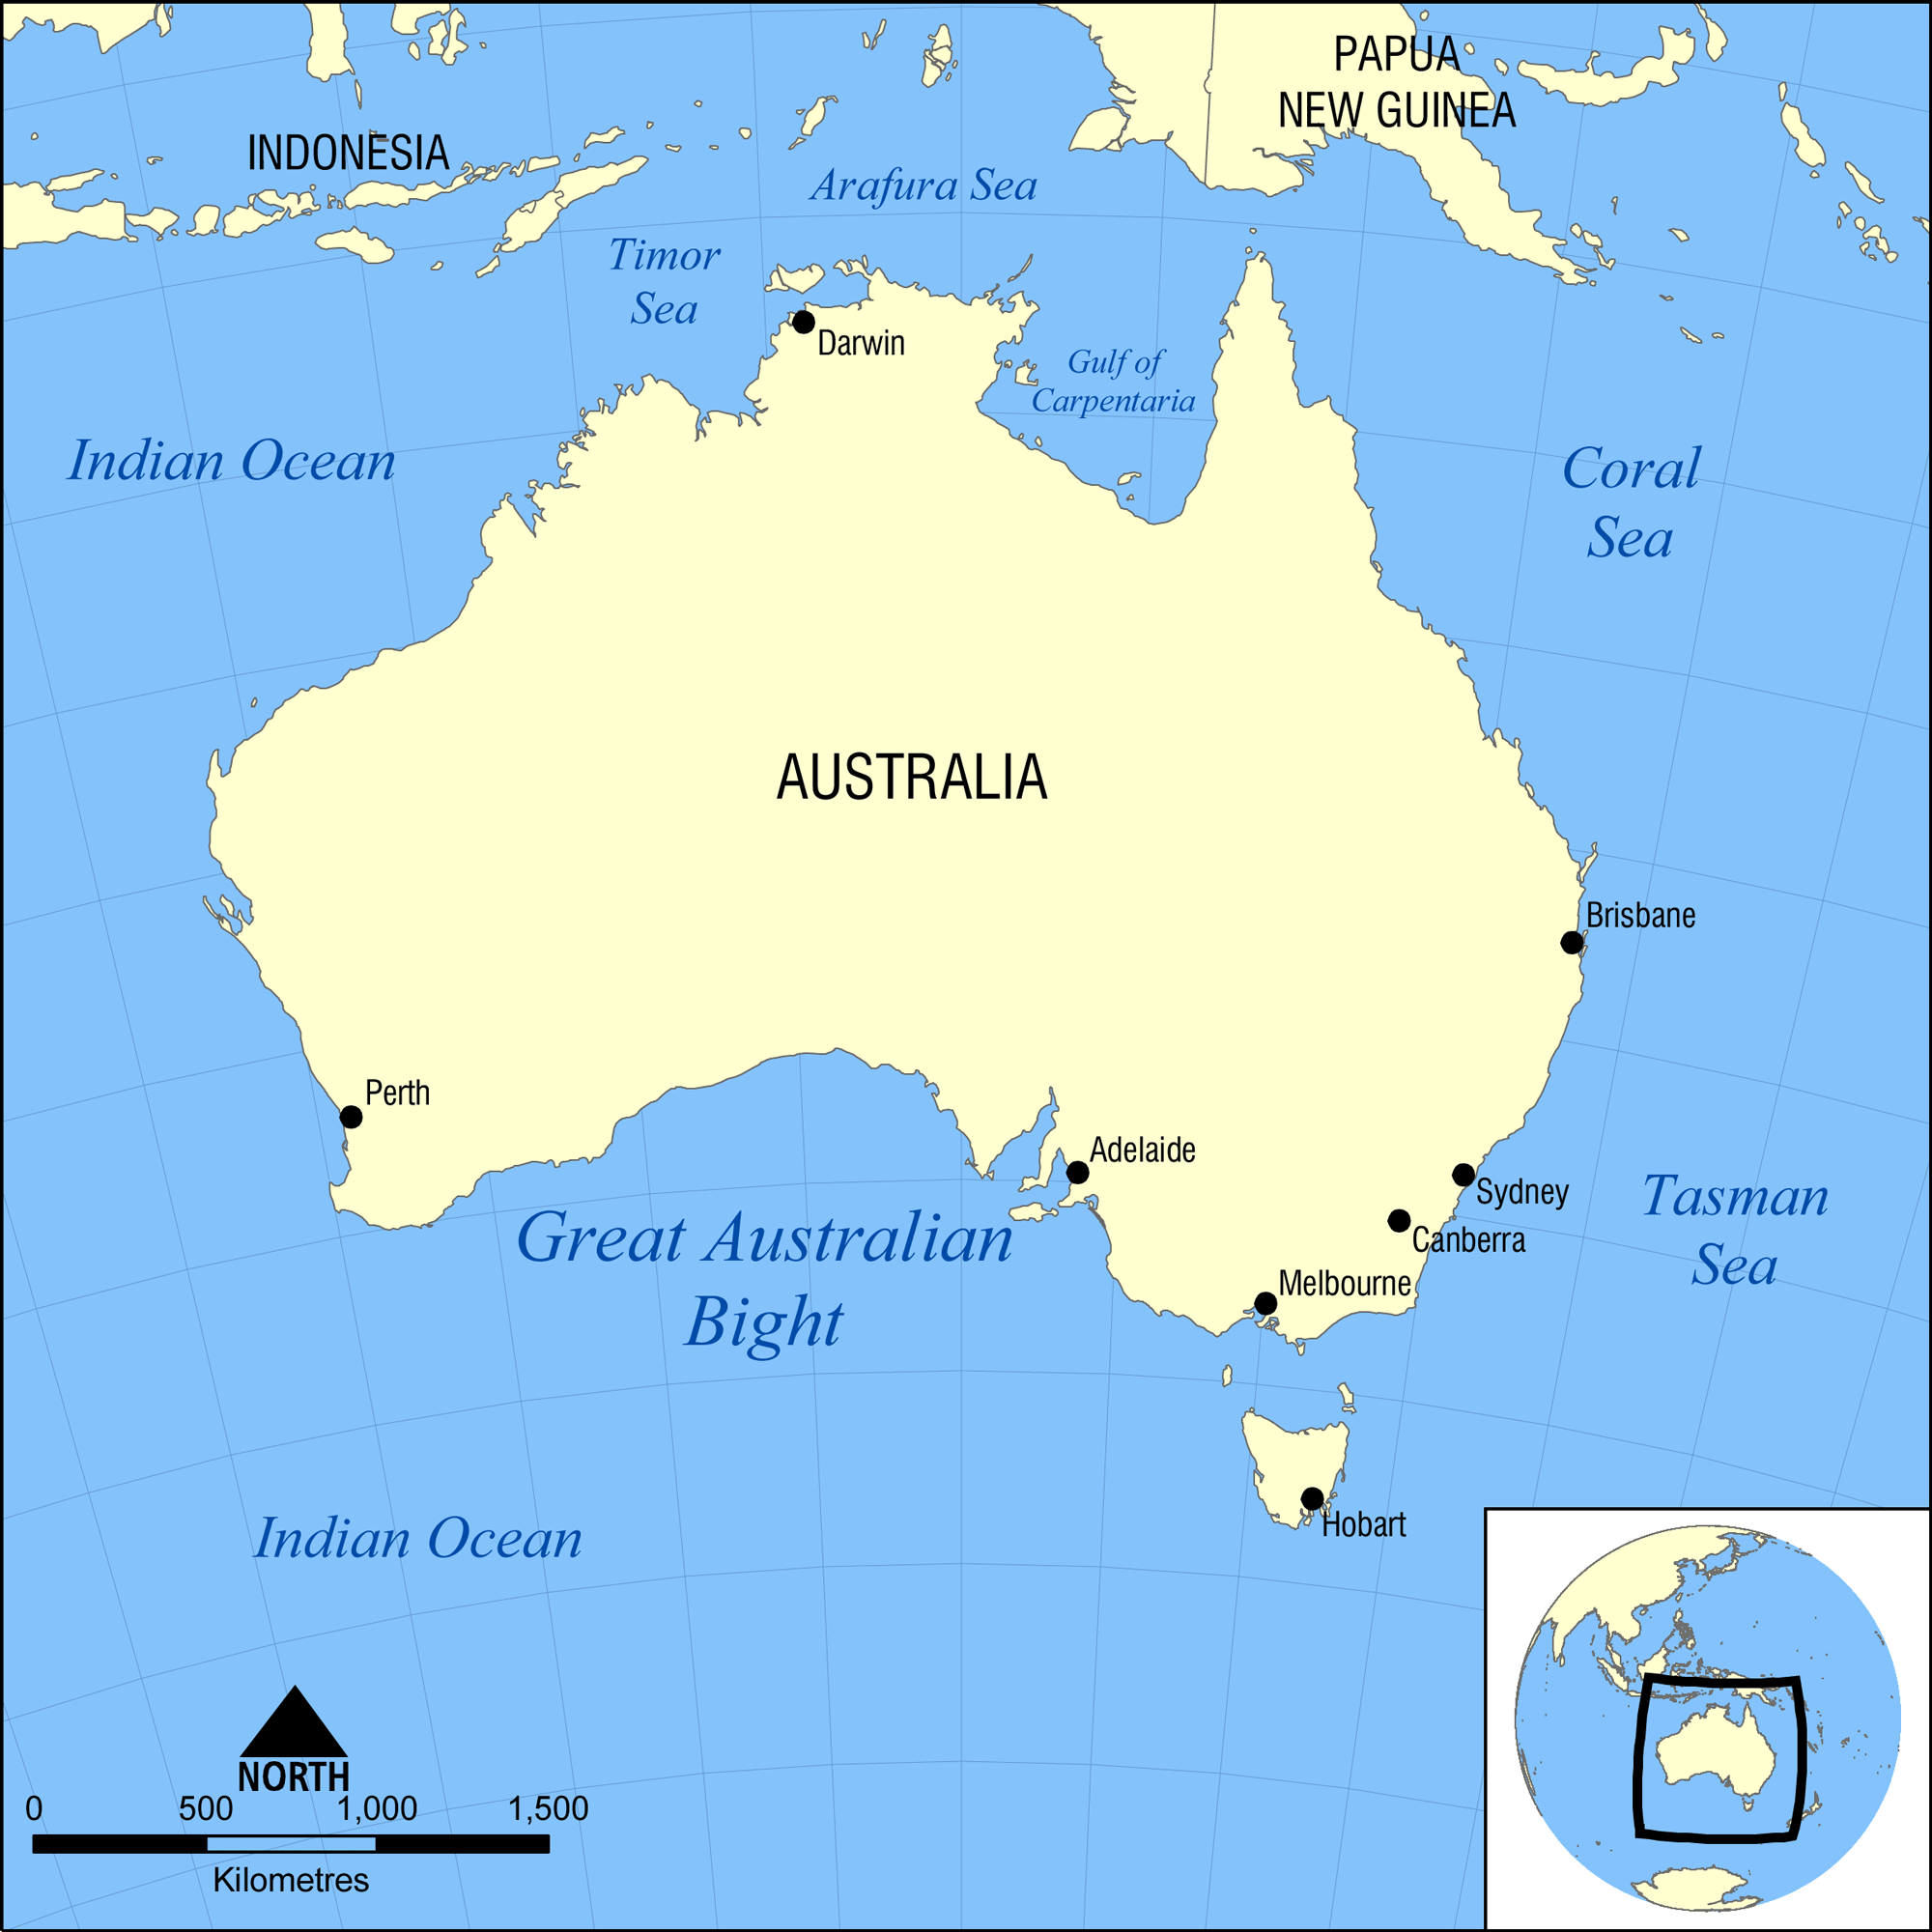 File:Great Australian Bight map.png - Wikipedia, the free encyclopedia